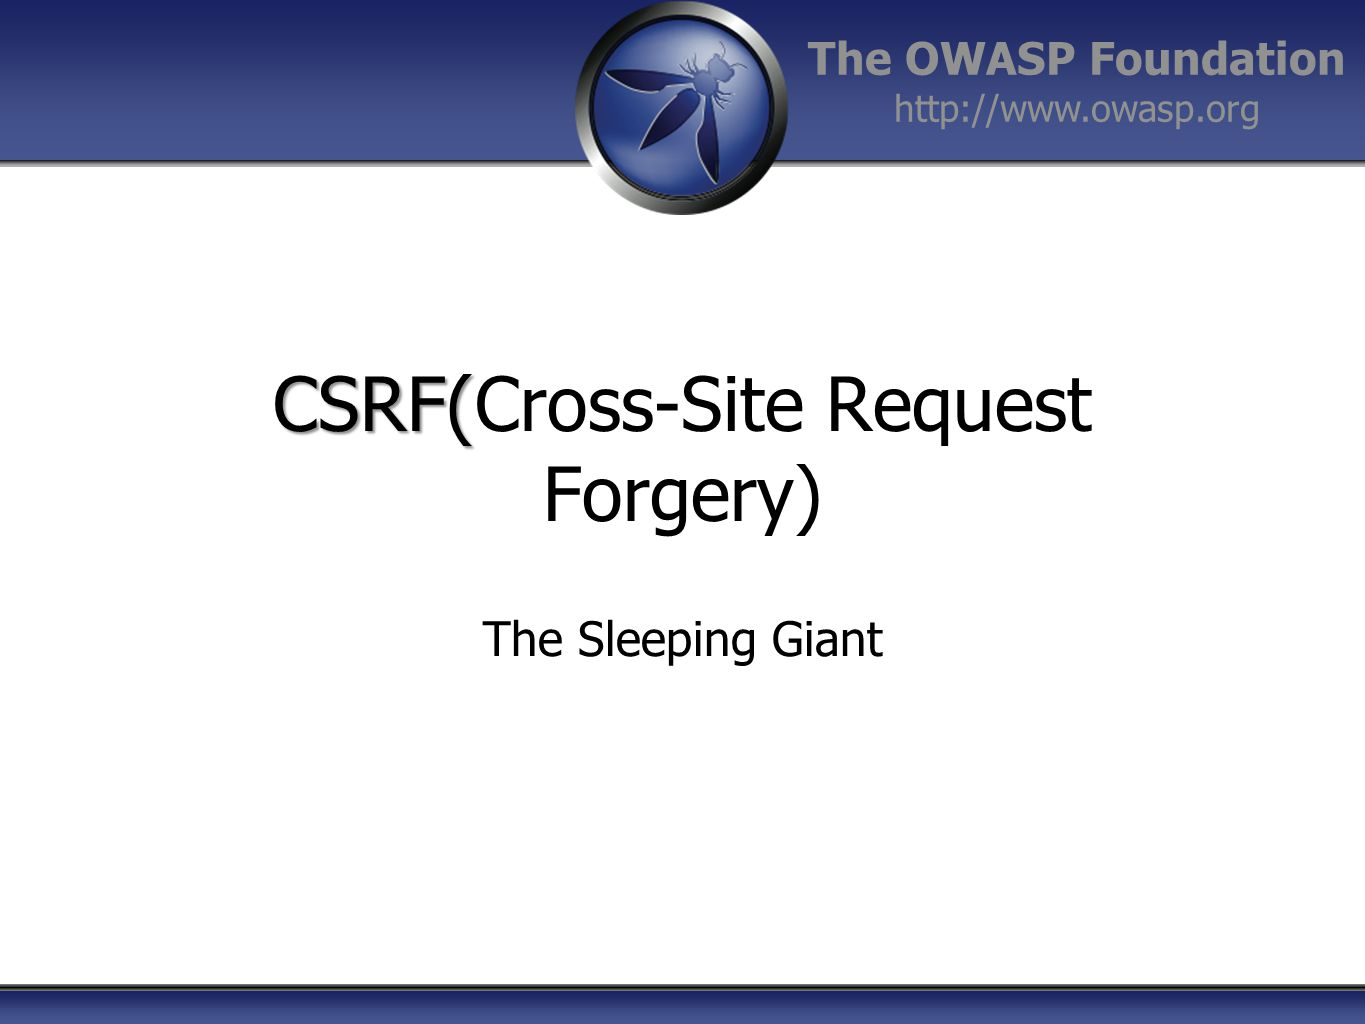 The OWASP Foundation http://www.owasp.org CSRF( CSRF(Cross-Site Request Forgery) The Sleeping Giant